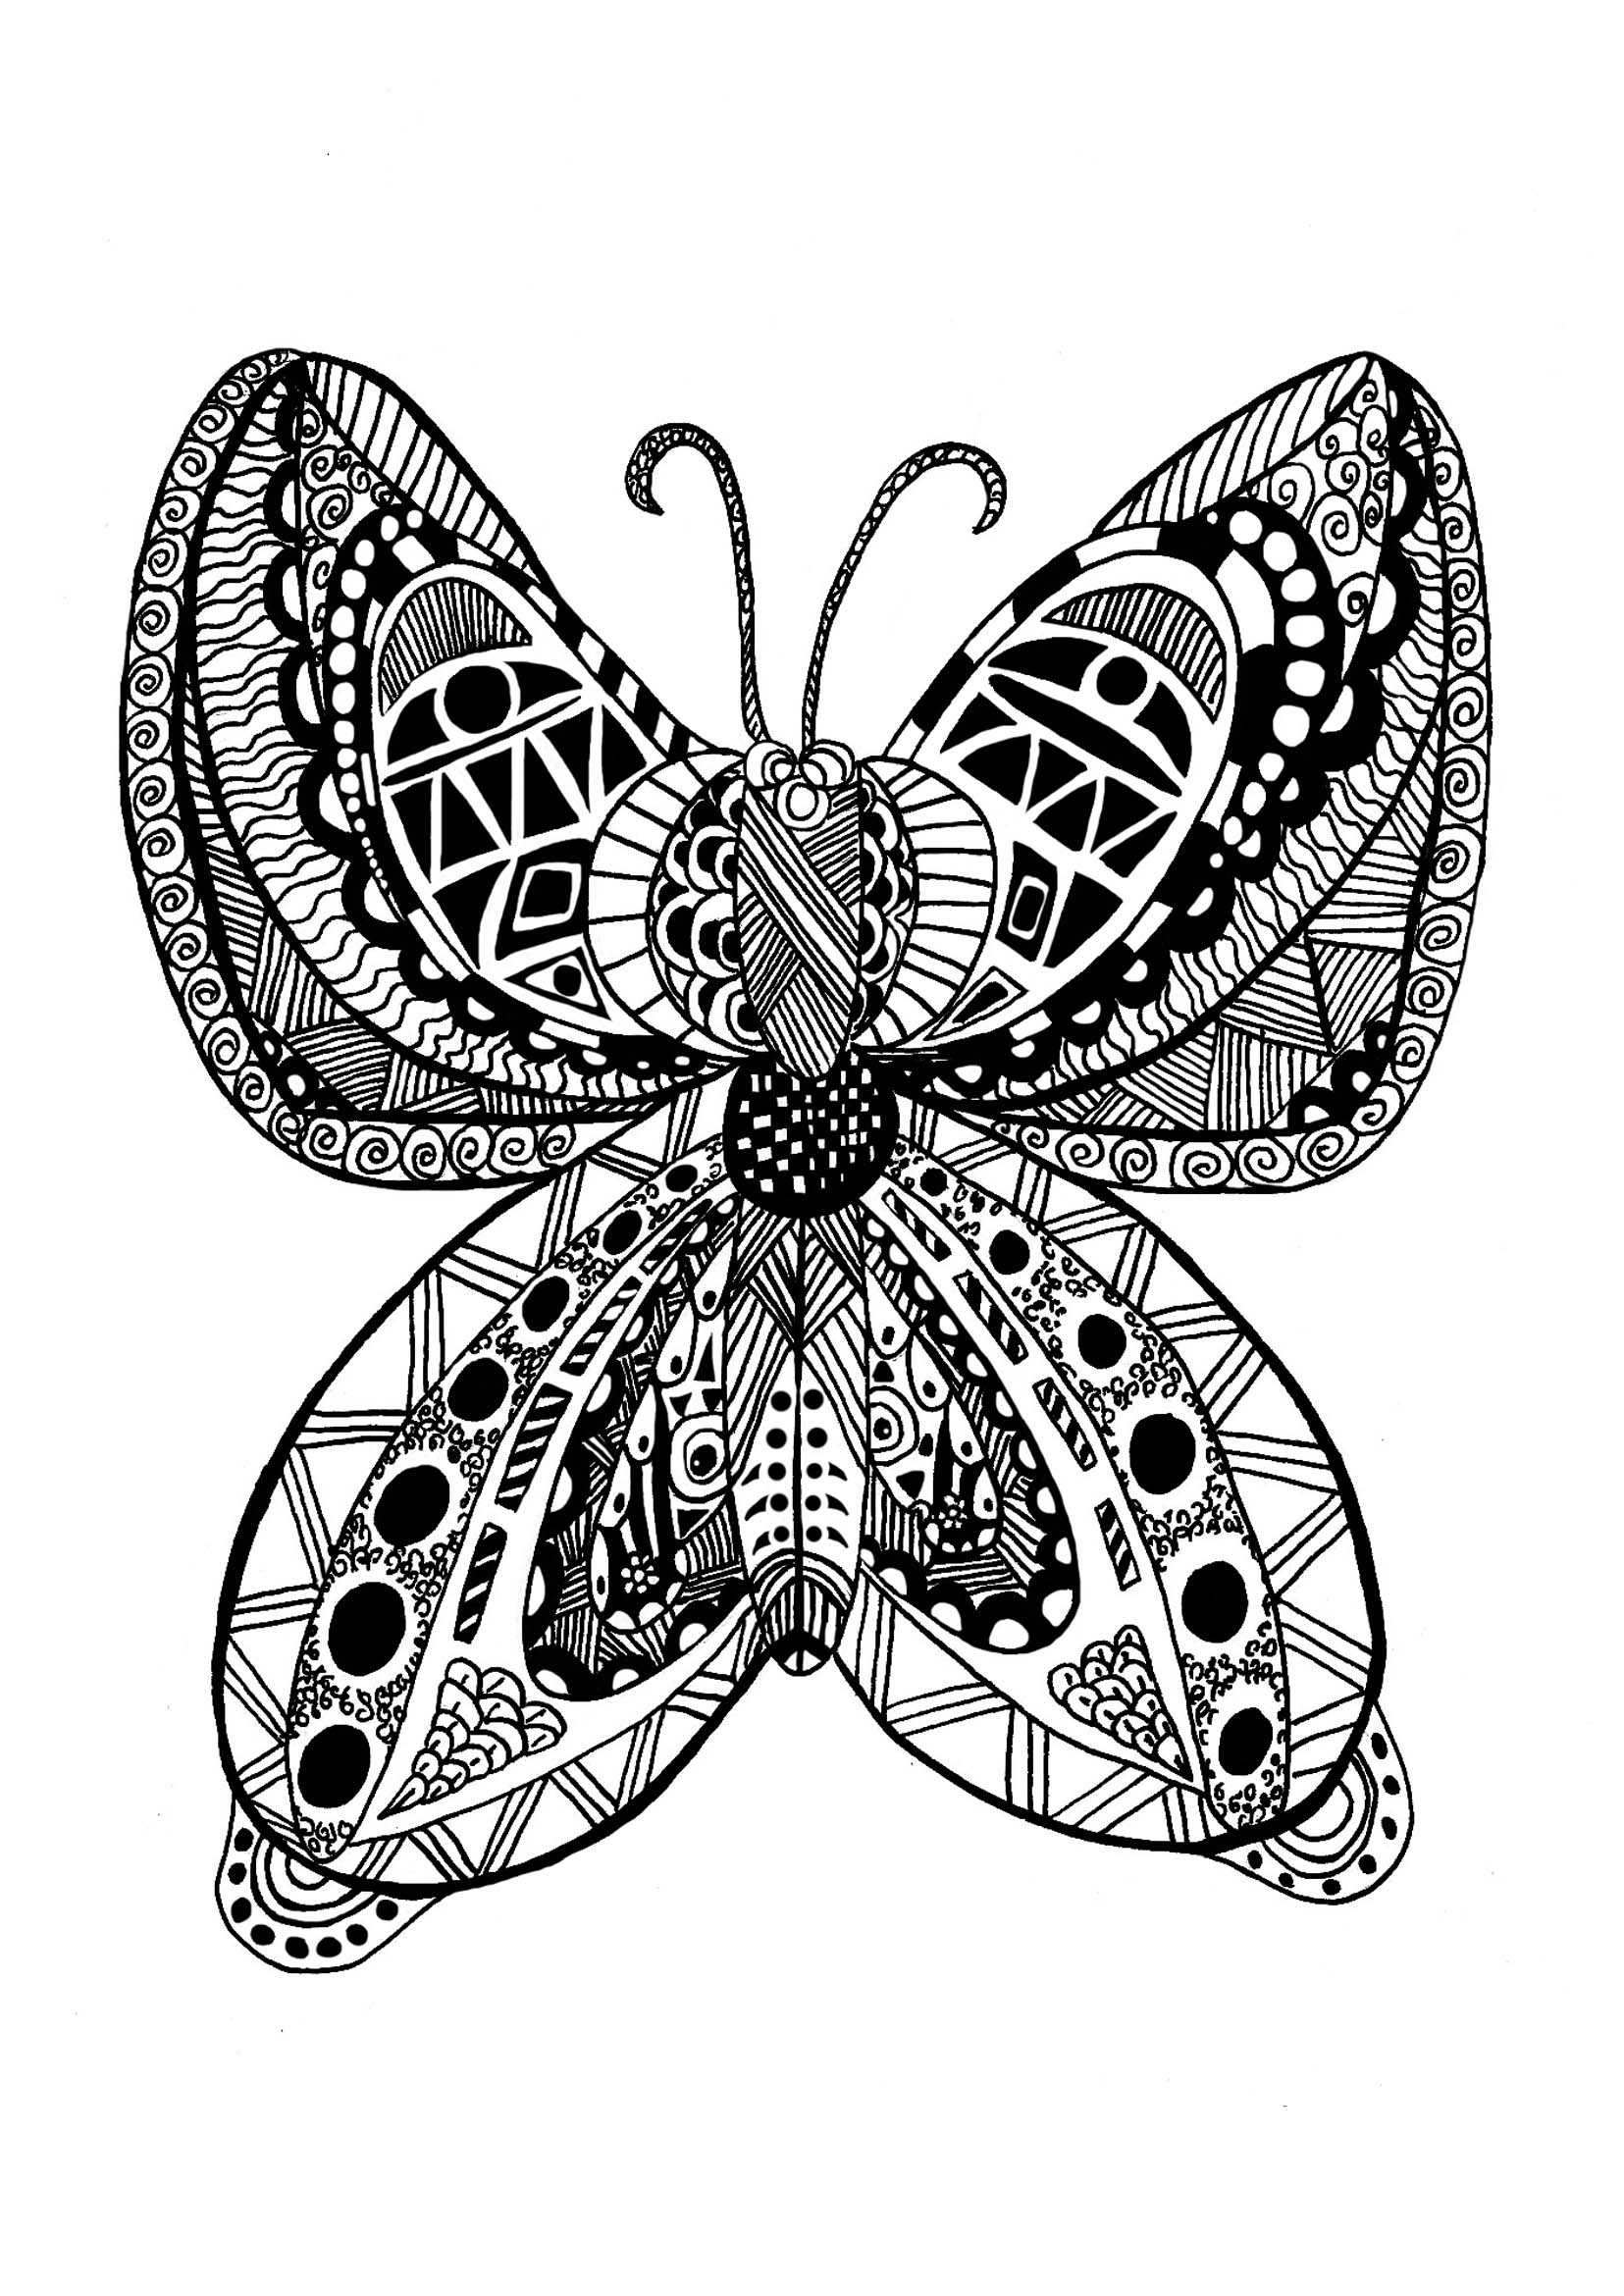 coloring pages zentangle zentangle to print zentangle kids coloring pages pages zentangle coloring